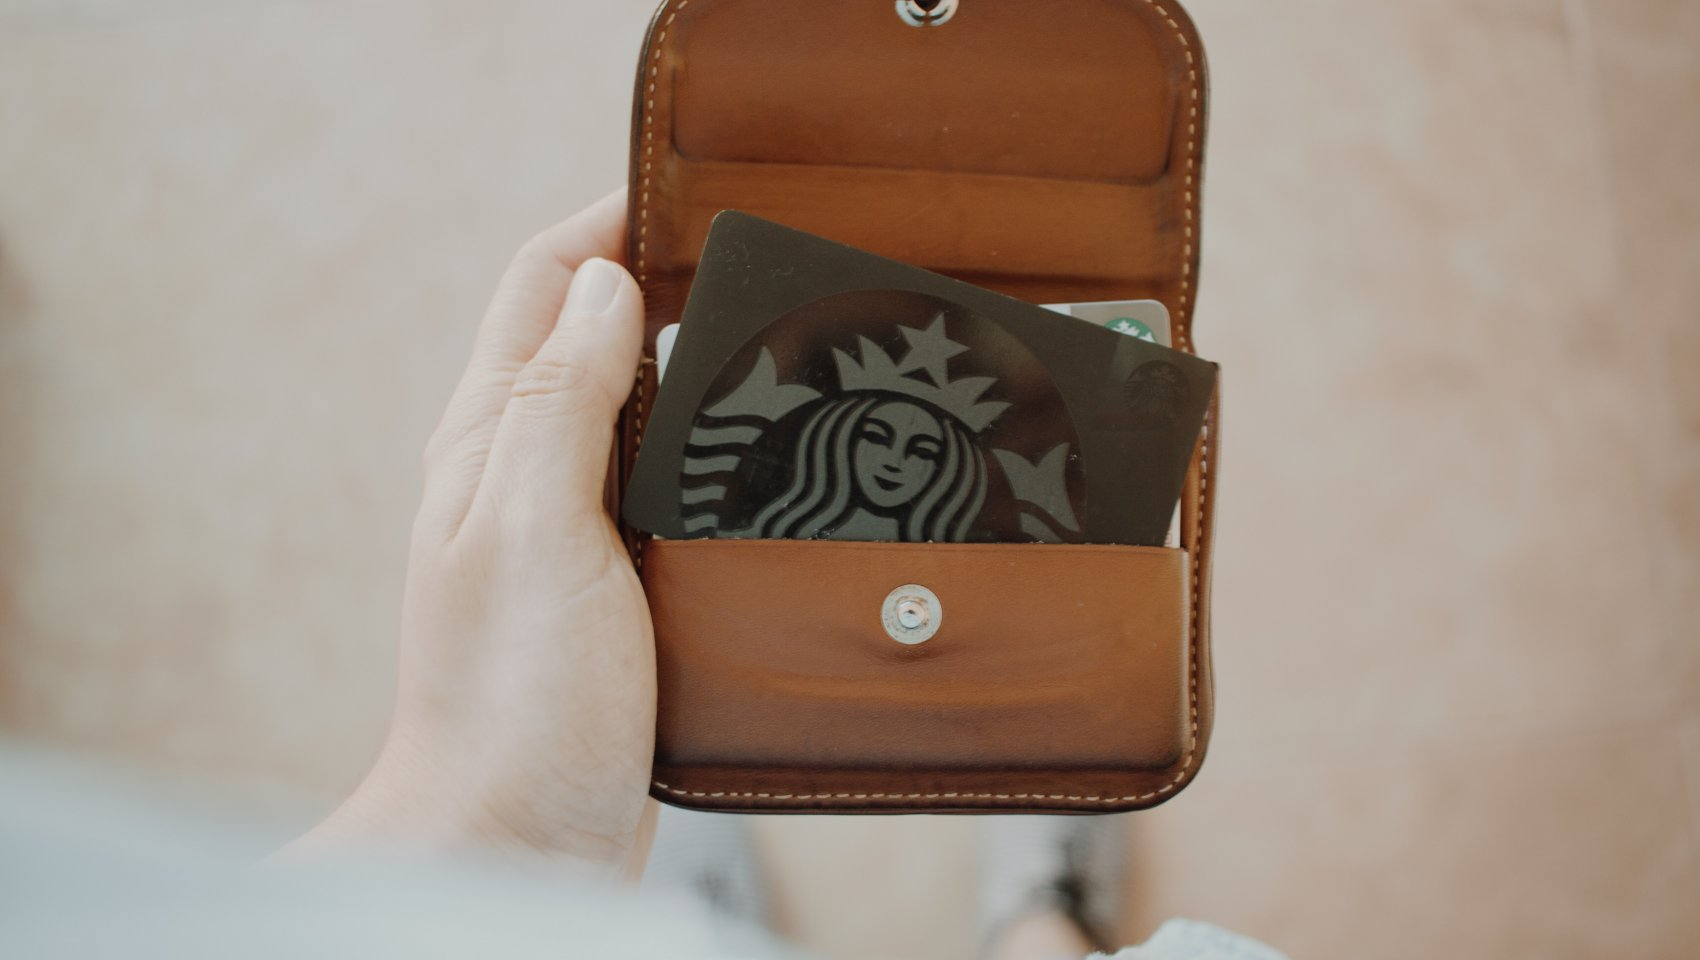 wallet with a Starbucks loyalty card